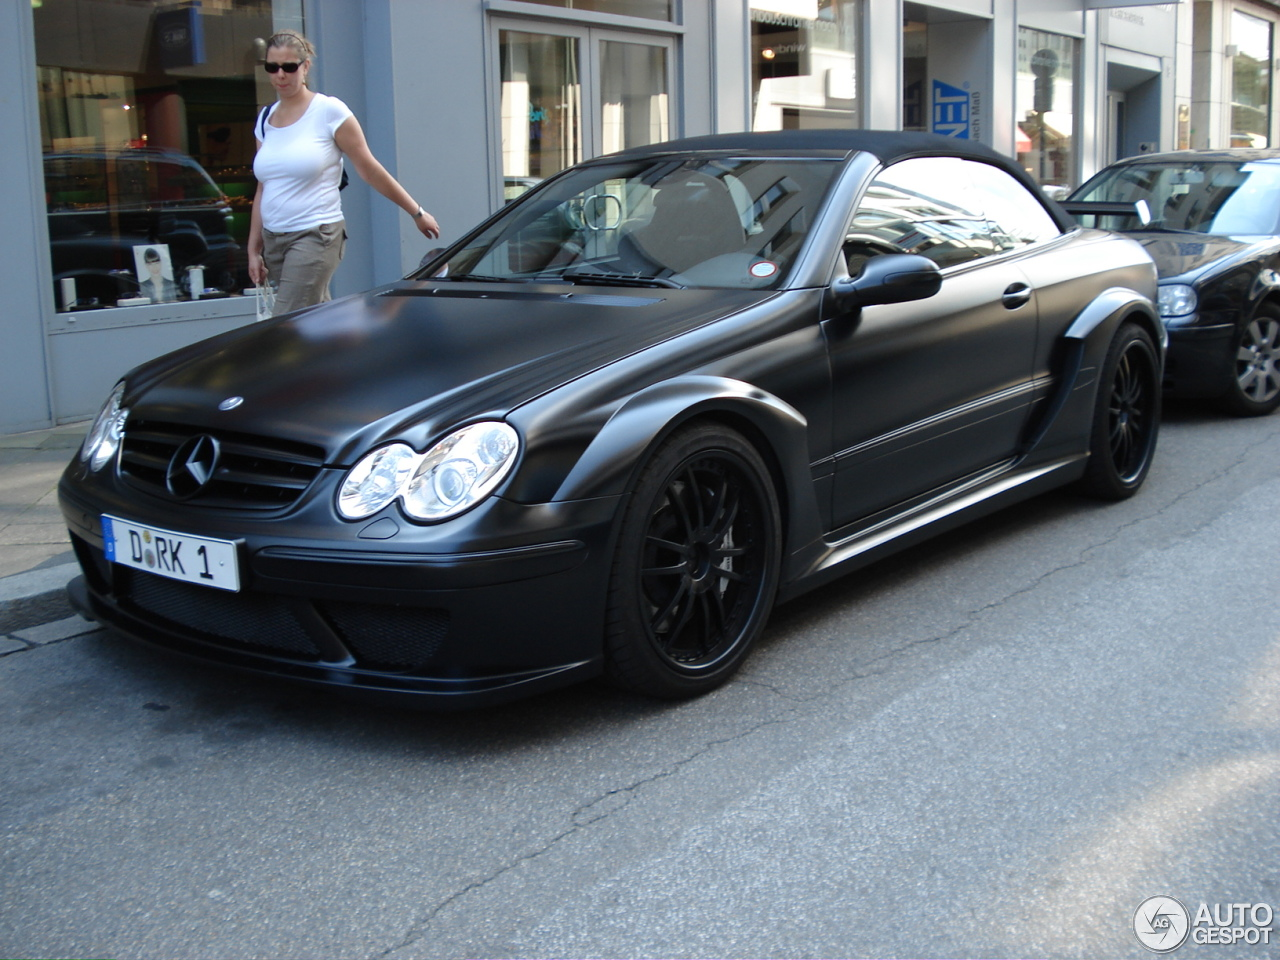 mercedes benz clk dtm amg cabriolet 31 octobre 2012 autogespot. Black Bedroom Furniture Sets. Home Design Ideas